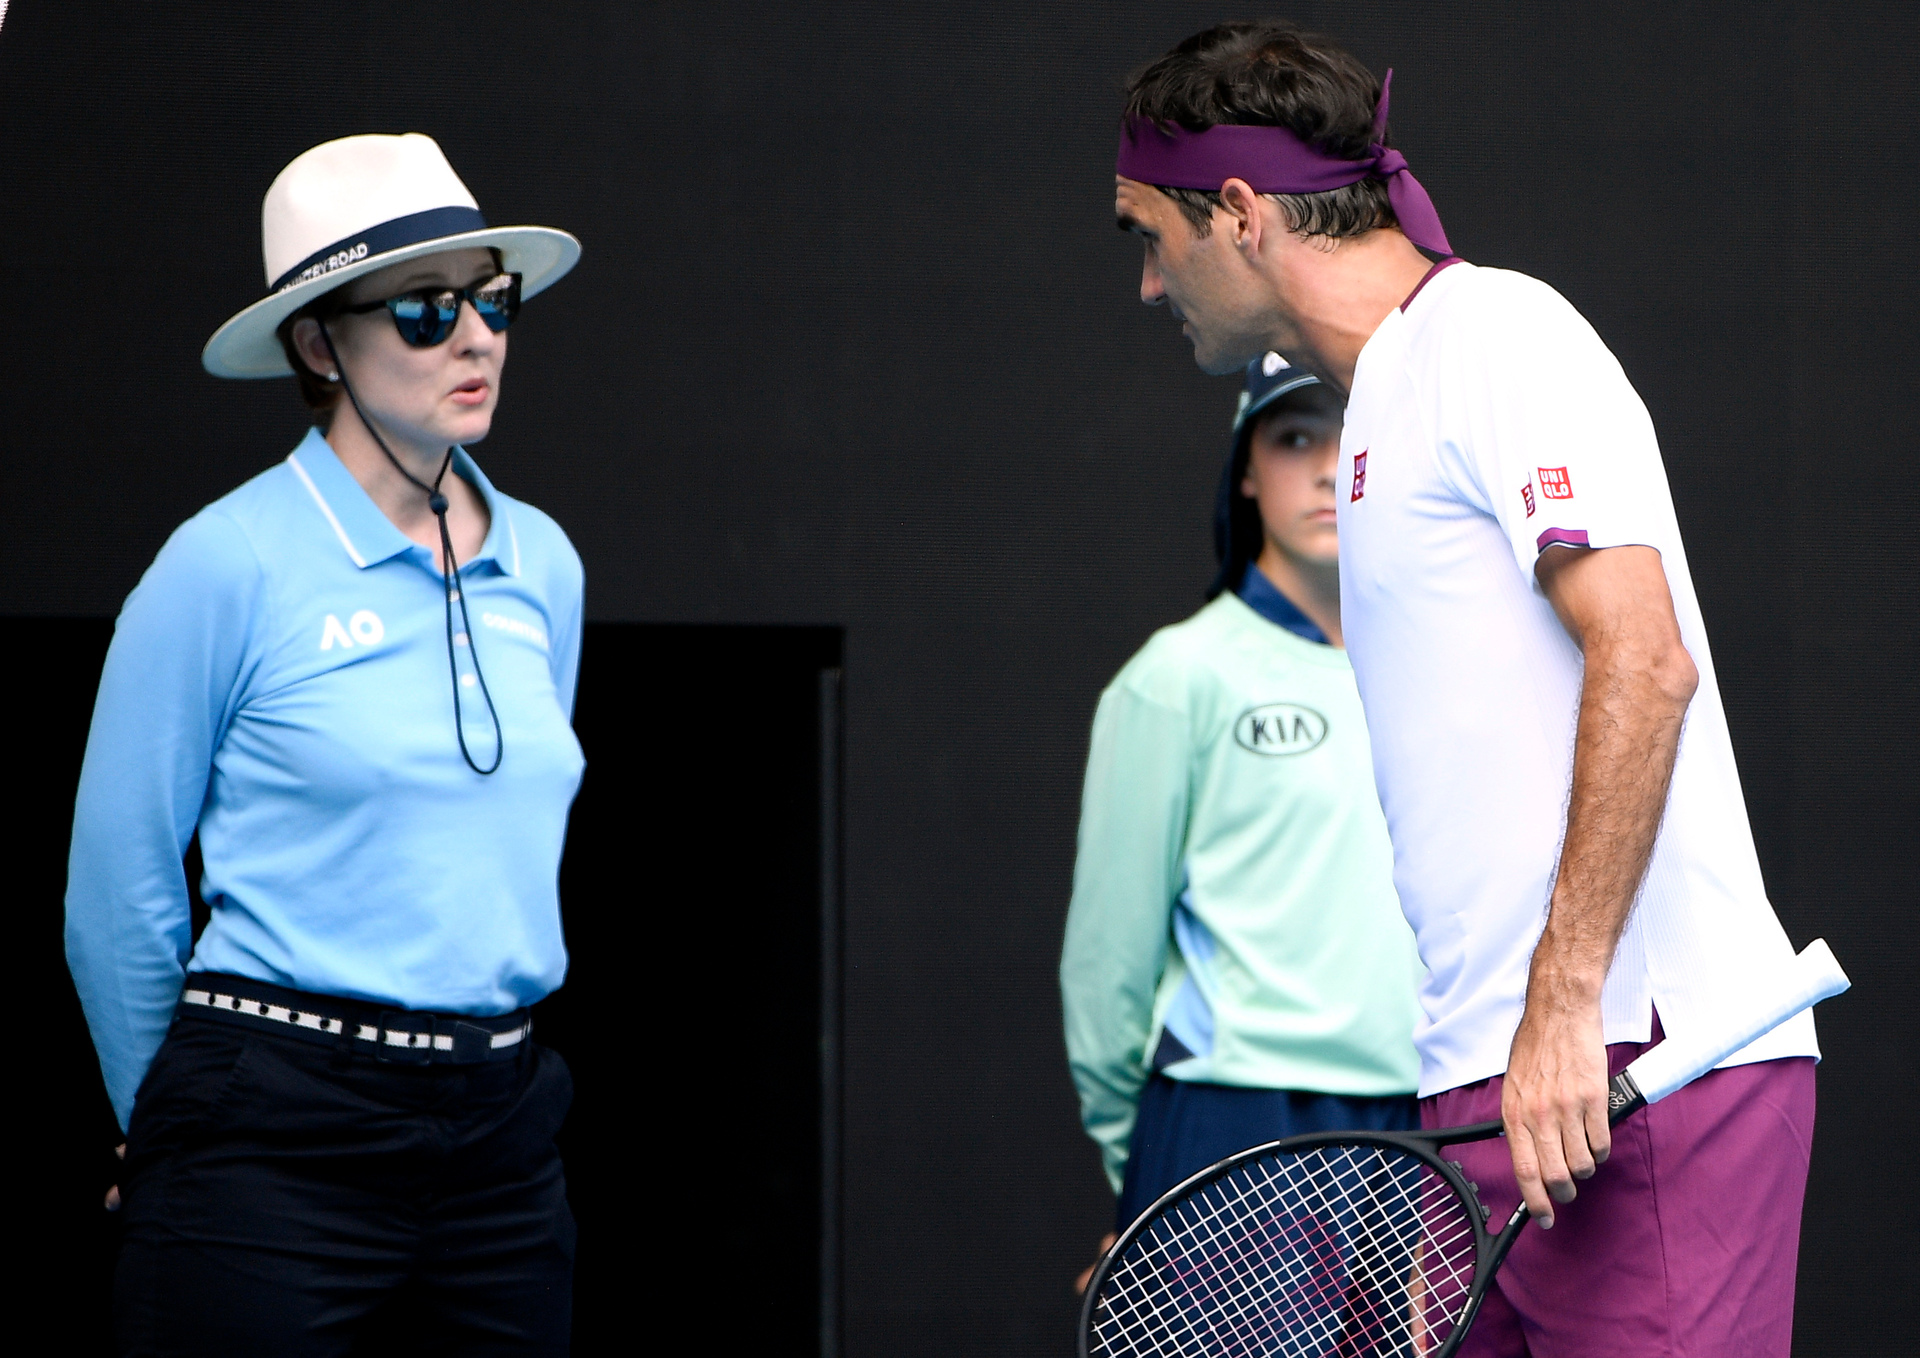 'Clearly she speaks mixed': Federer stunned after blow up